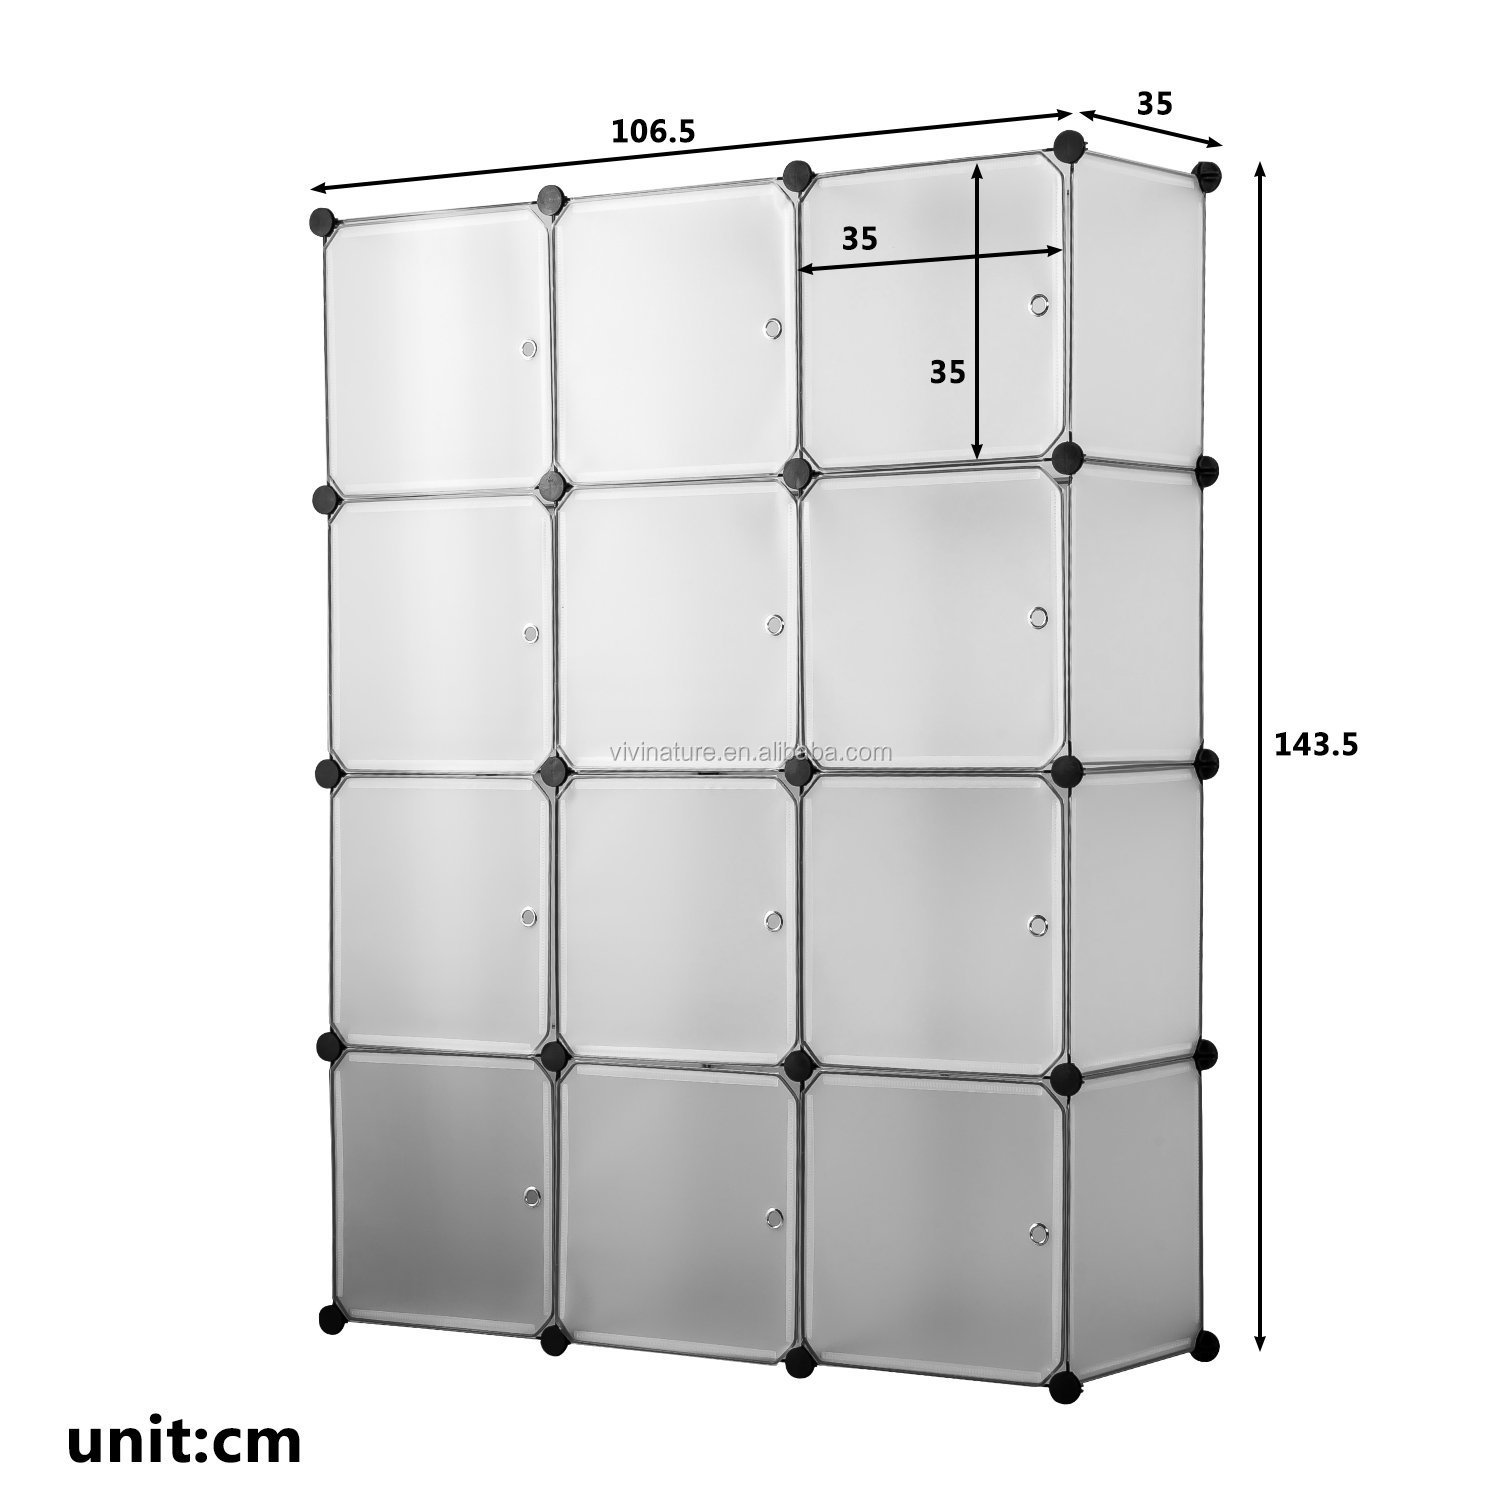 Multifunctional Modular Wardrobe Cabinet with Hanging Rod for Clothes Shoes Toys Bedroom Living Room